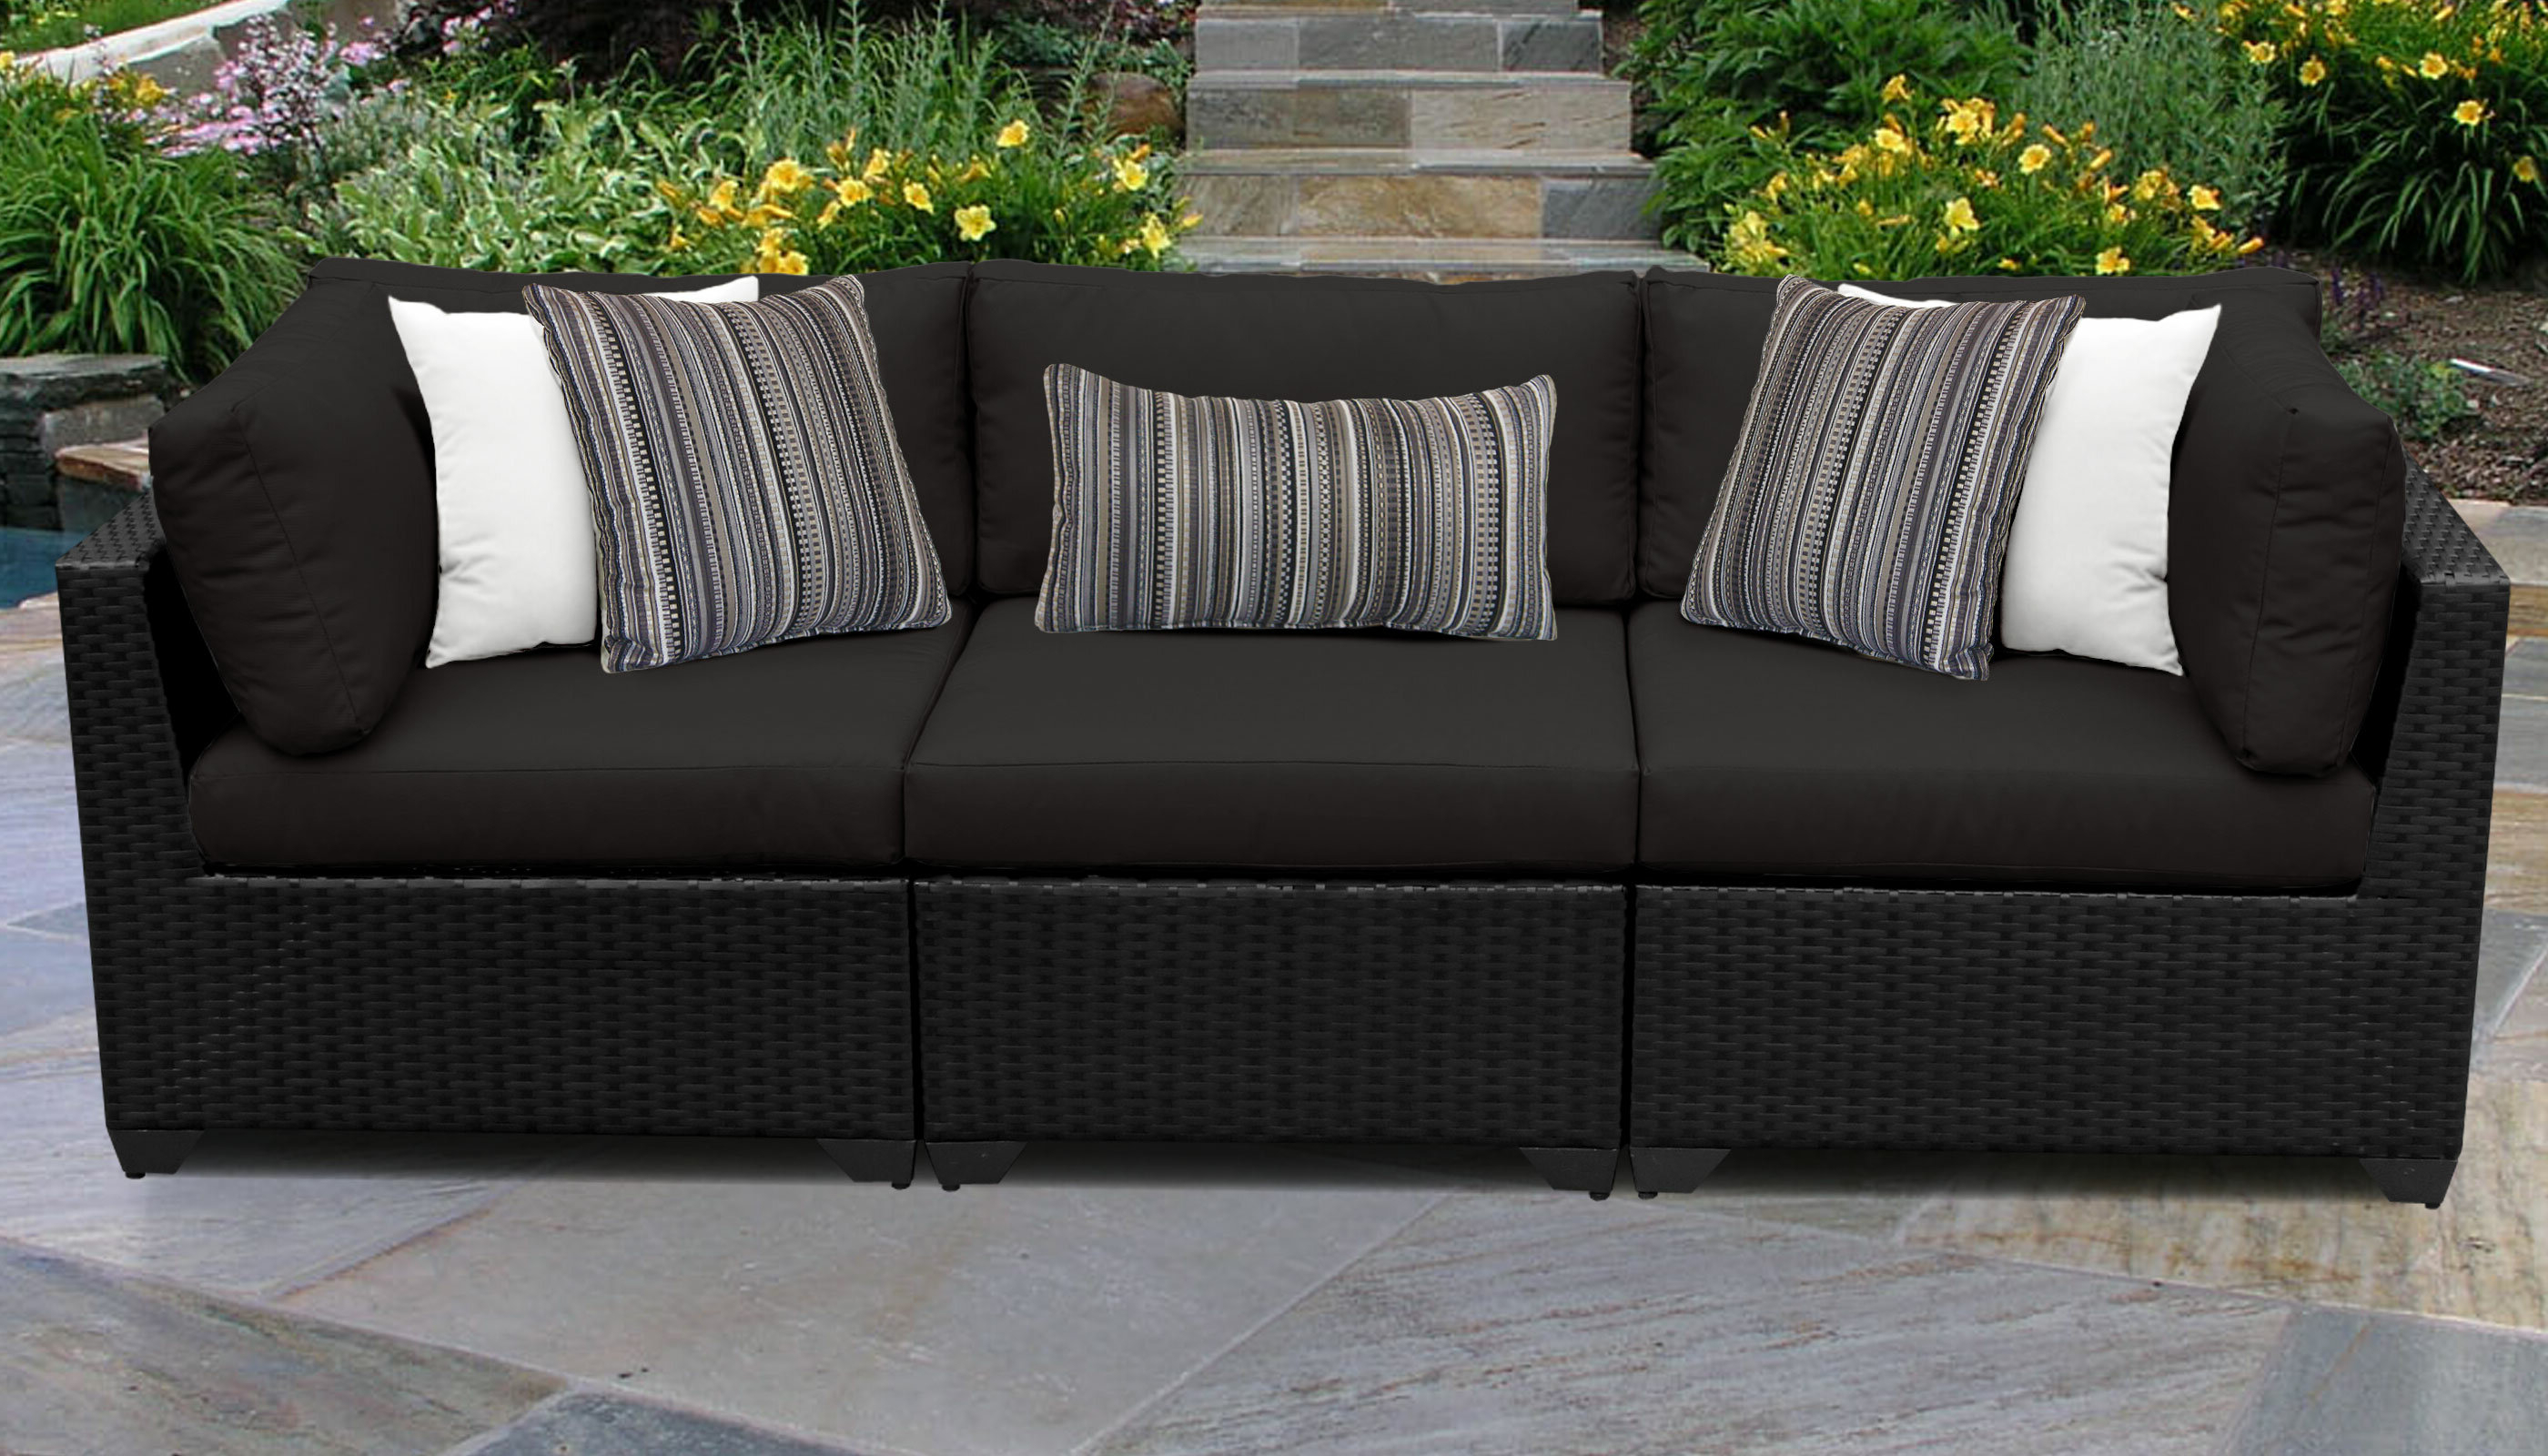 Well Liked Camak Patio Sofa With Cushions Intended For Camak Patio Sofas With Cushions (View 20 of 20)